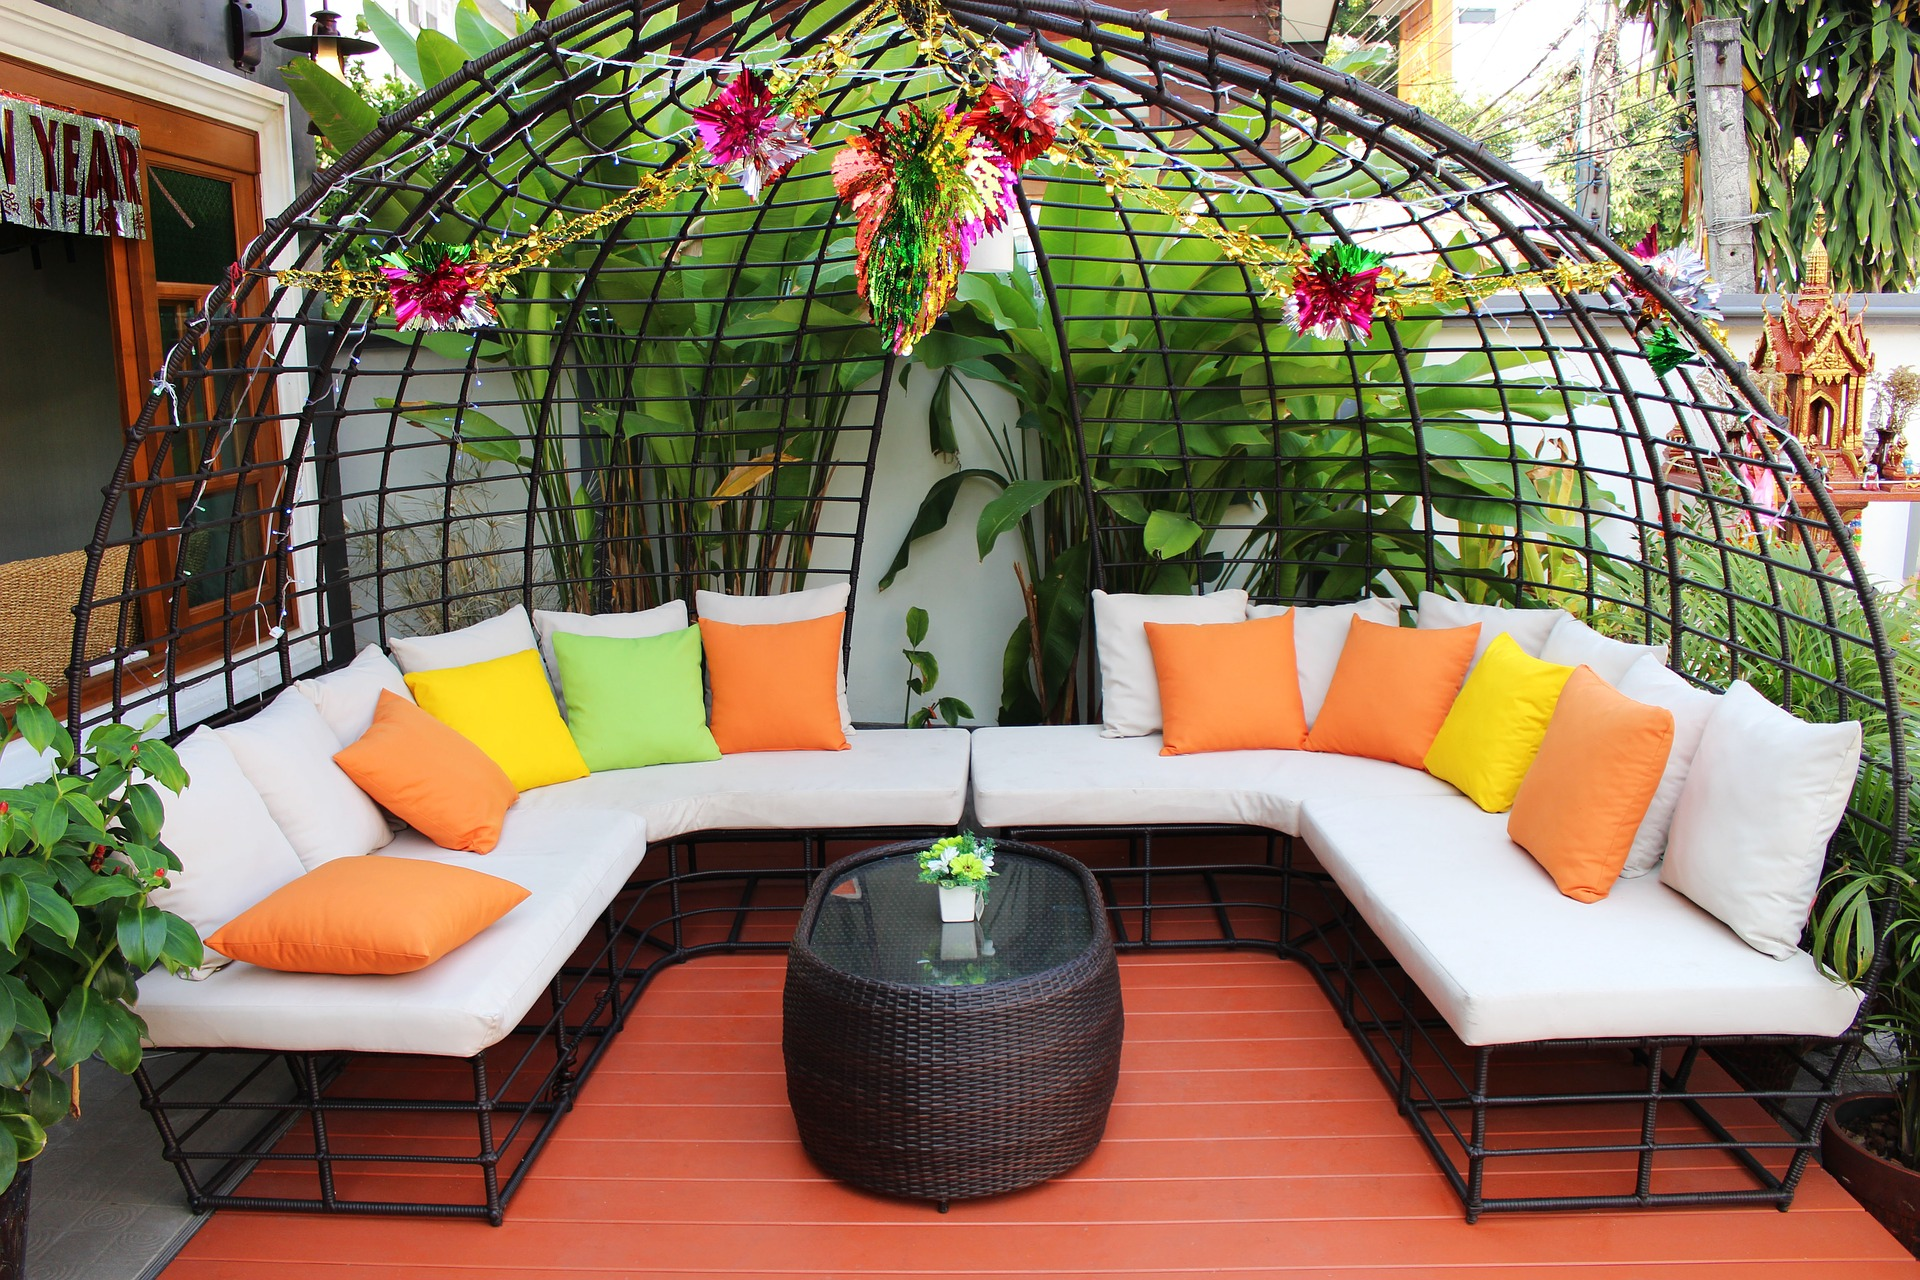 Colorful Seating Area